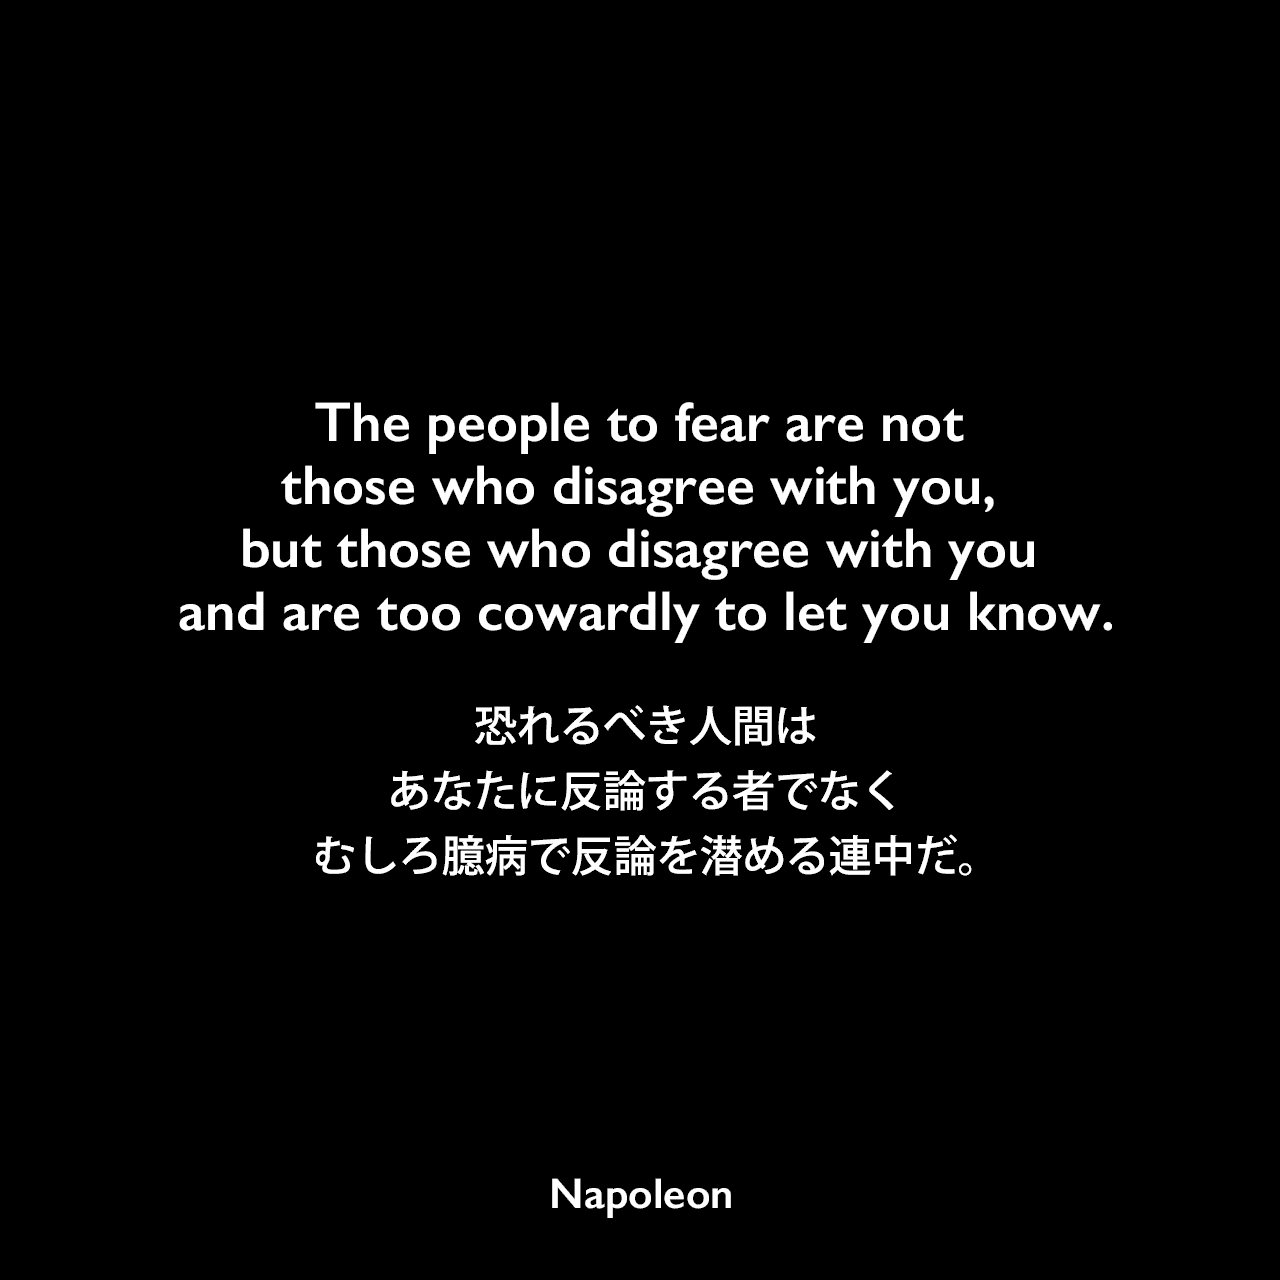 The people to fear are not those who disagree with you, but those who disagree with you and are too cowardly to let you know.恐れるべき人間はあなたに反論する者でなく、むしろ臆病で反論を潜める連中だ。Napoleon